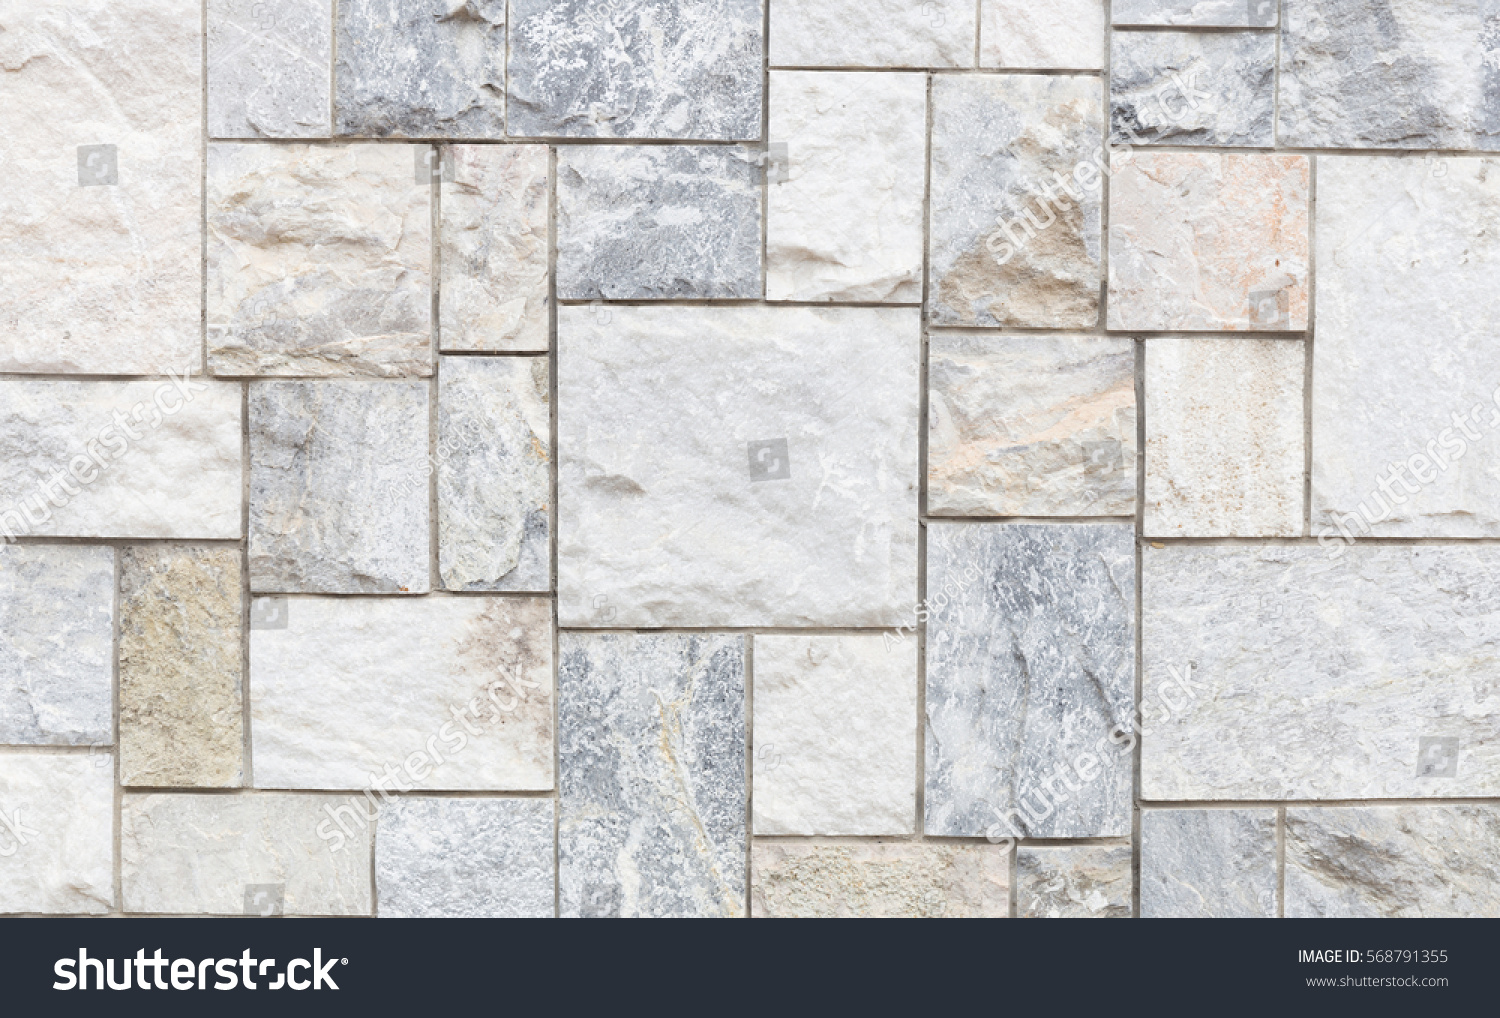 Close-up Home marble Rock wall texture old solid plan image background  concrete. Rusty